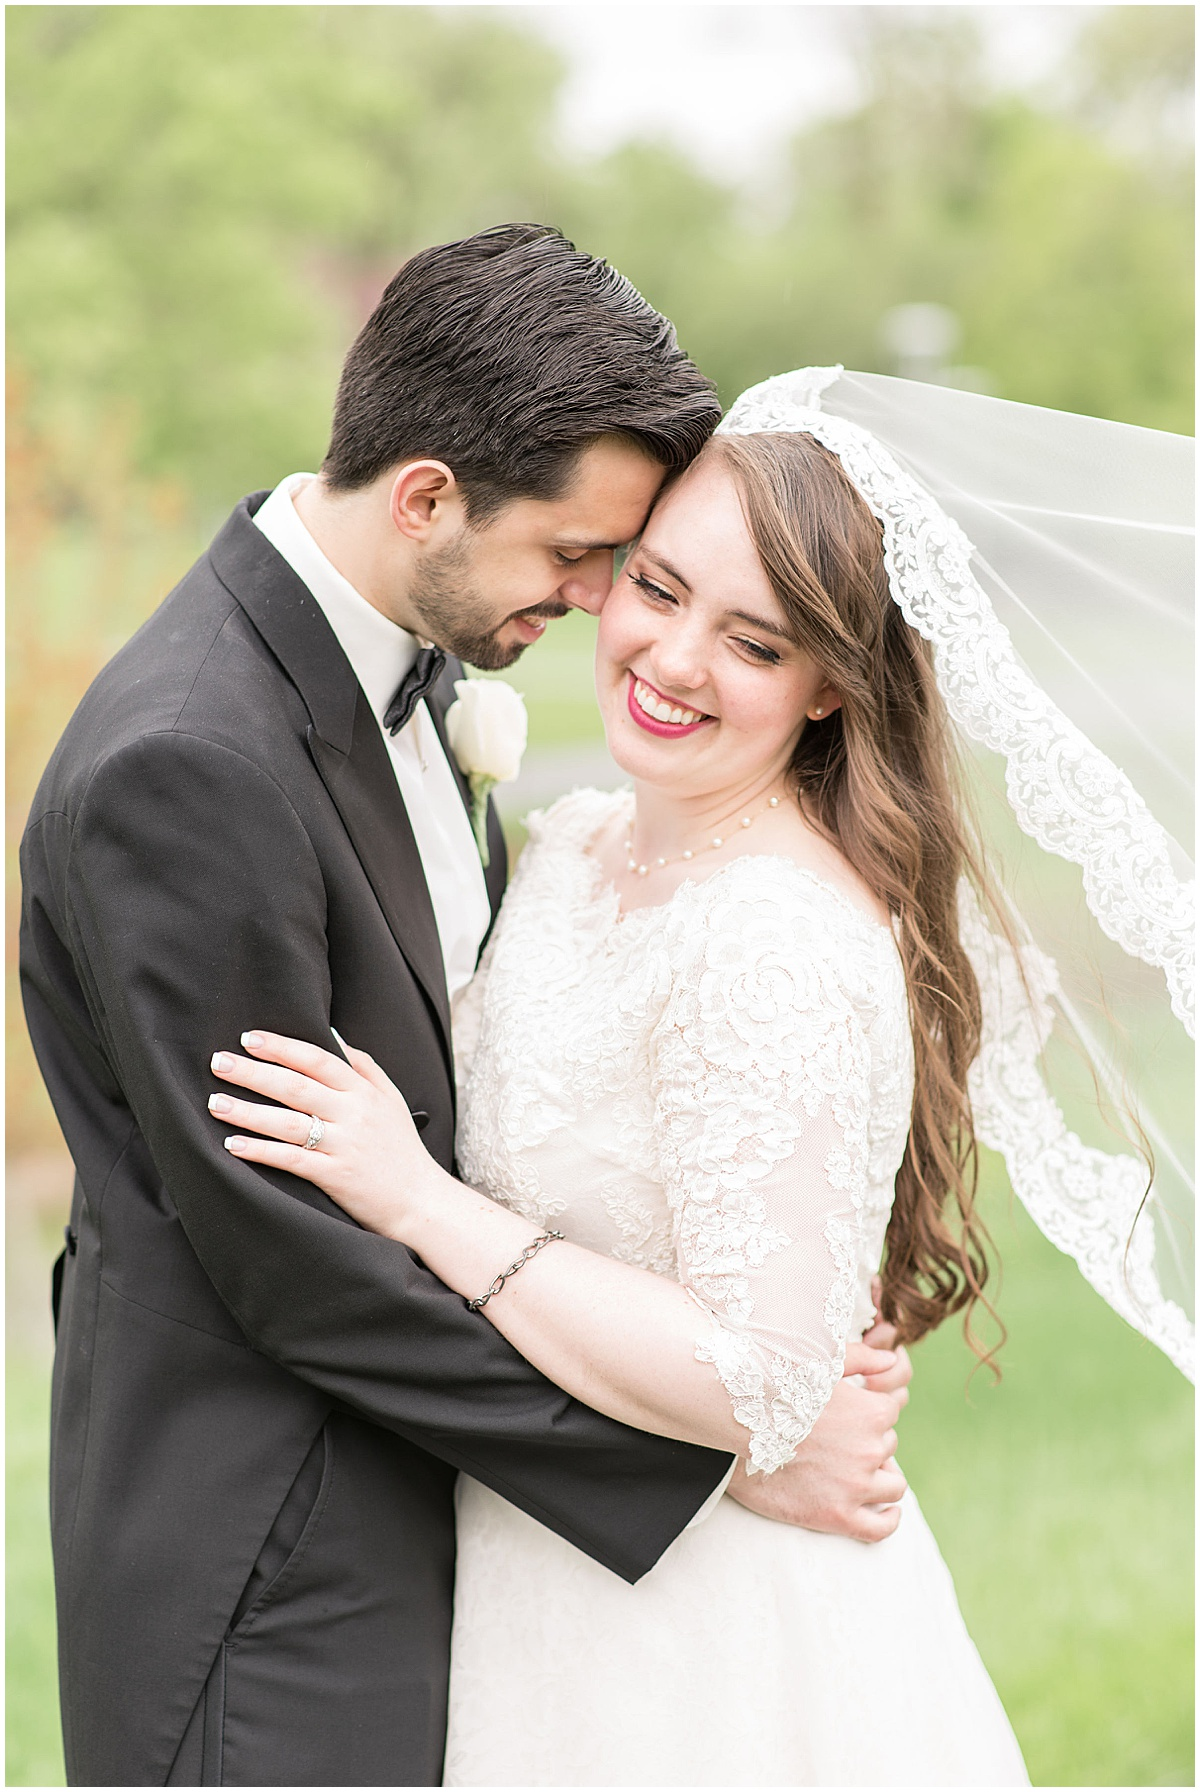 Wedding in Greenwood, Indiana photographed by Victoria Rayburn Photography